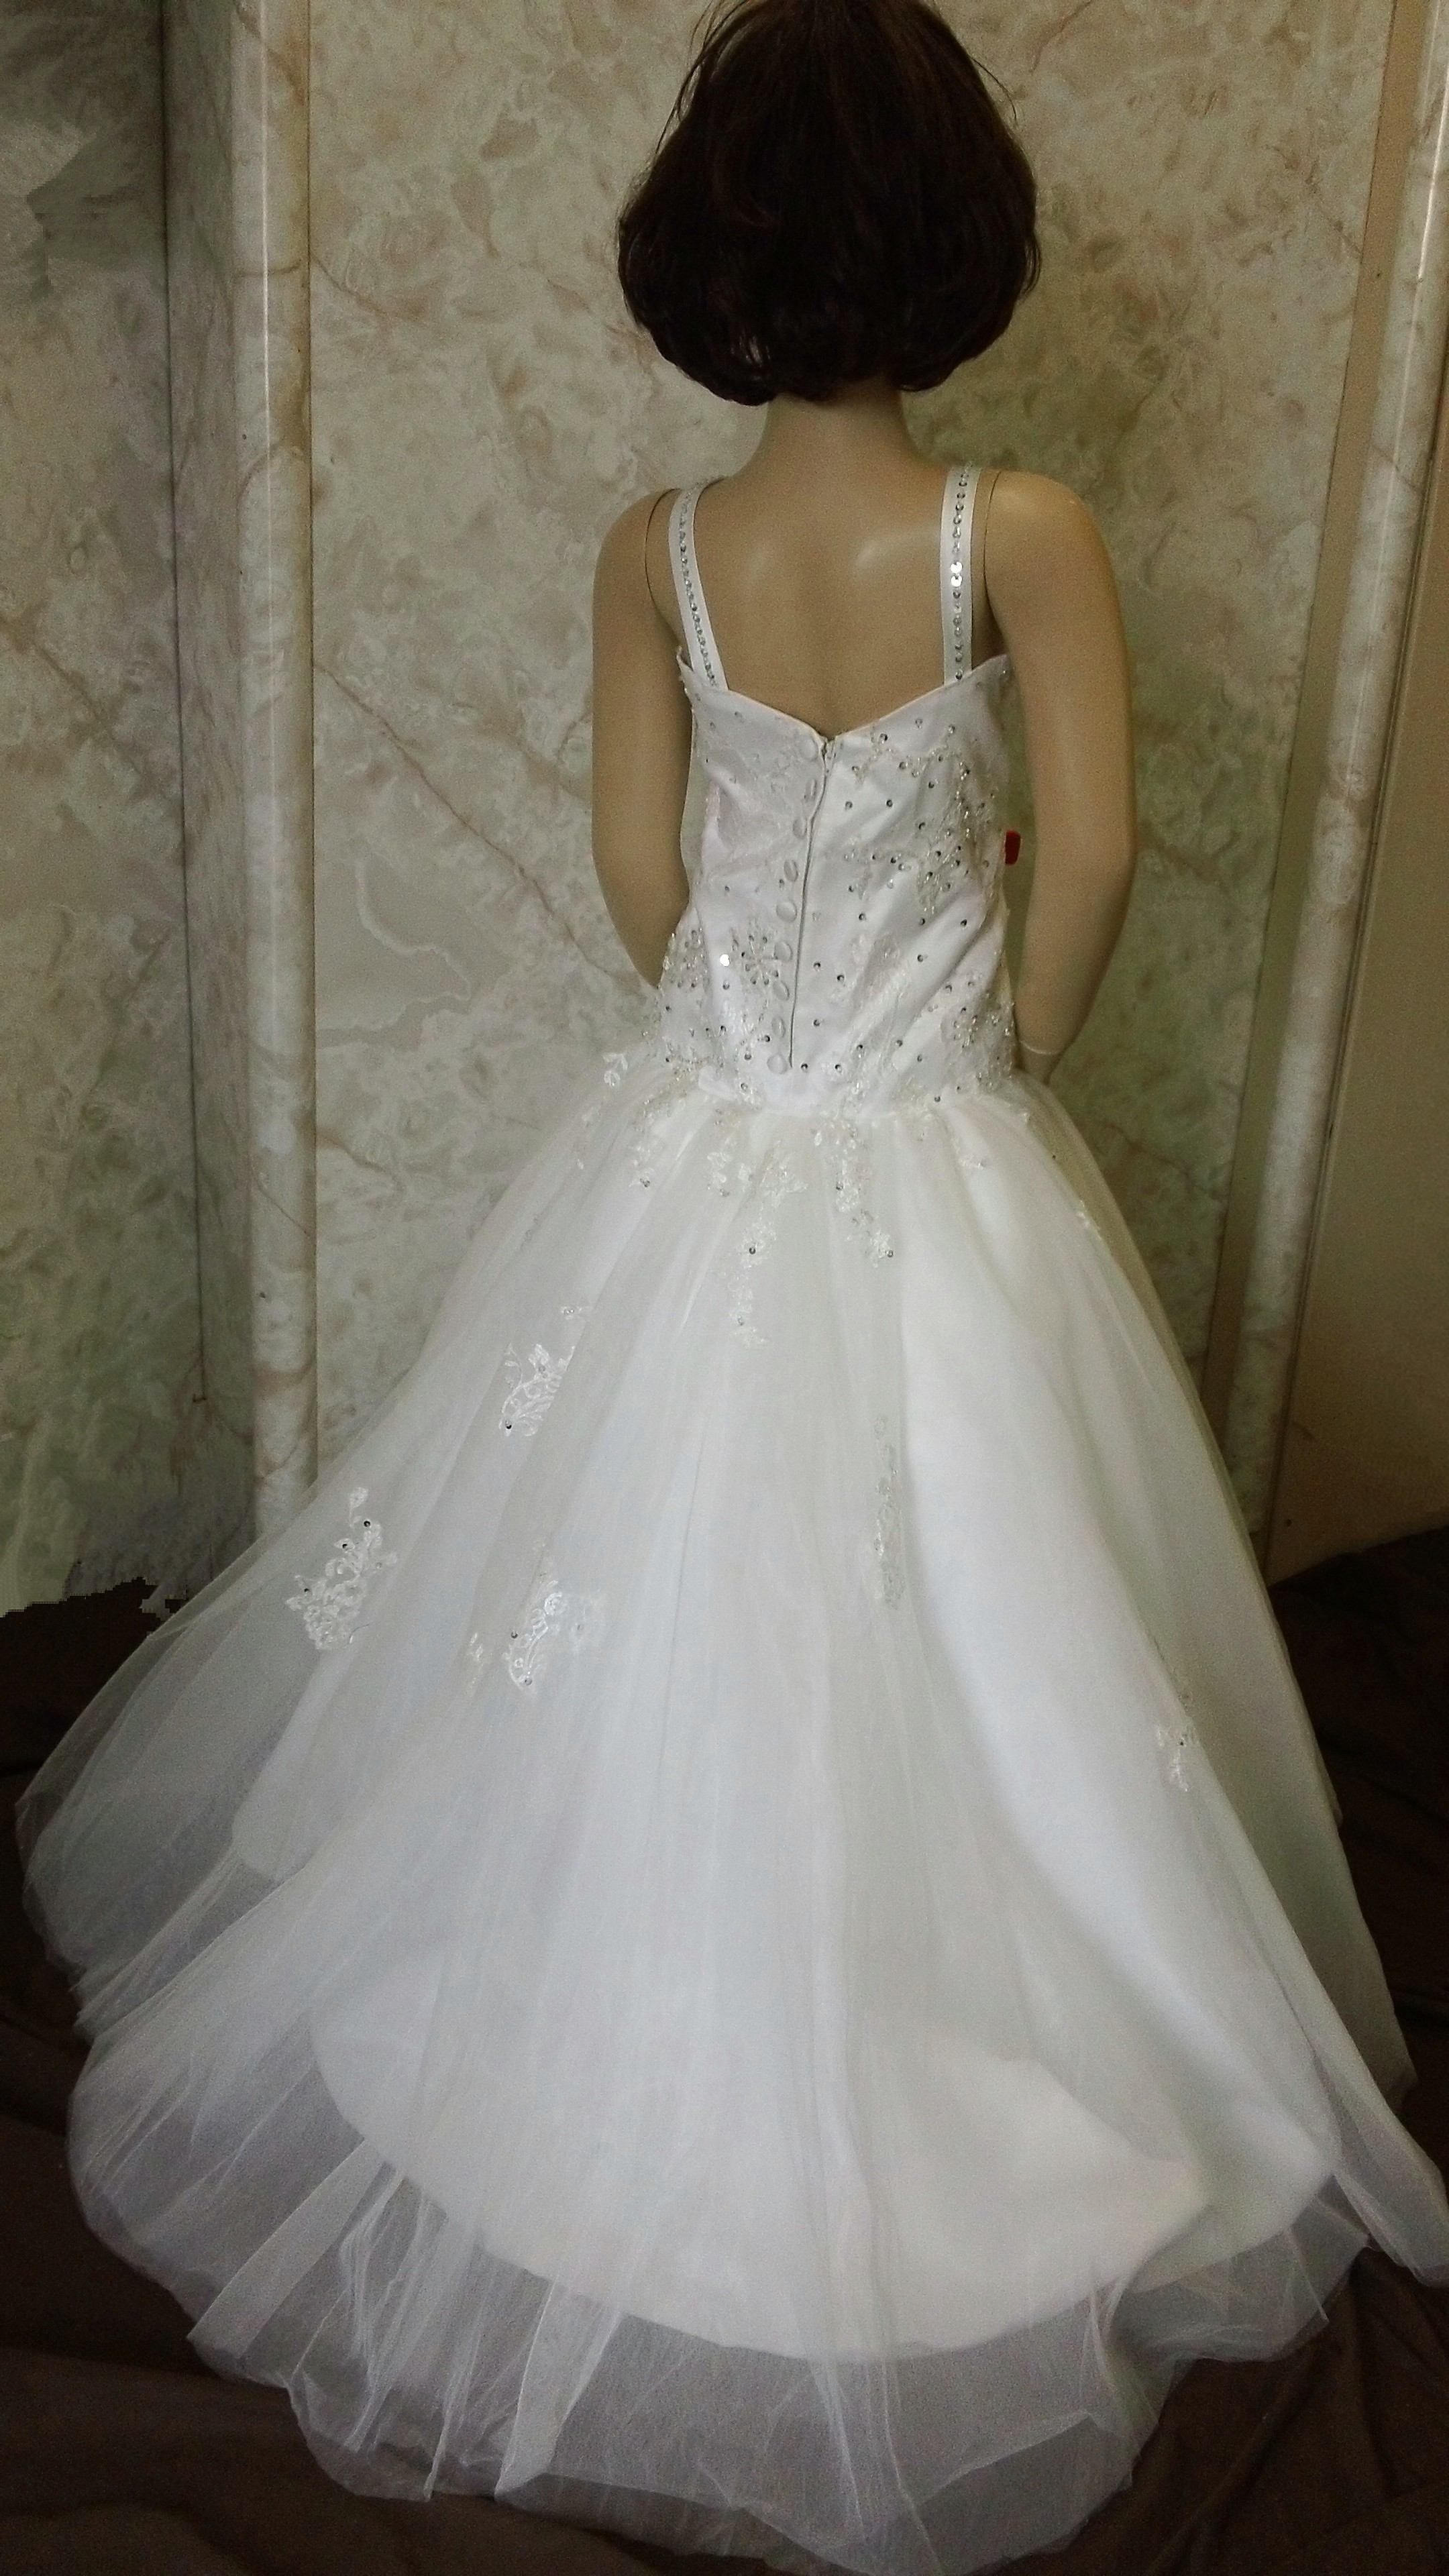 Miniature wedding gown with train